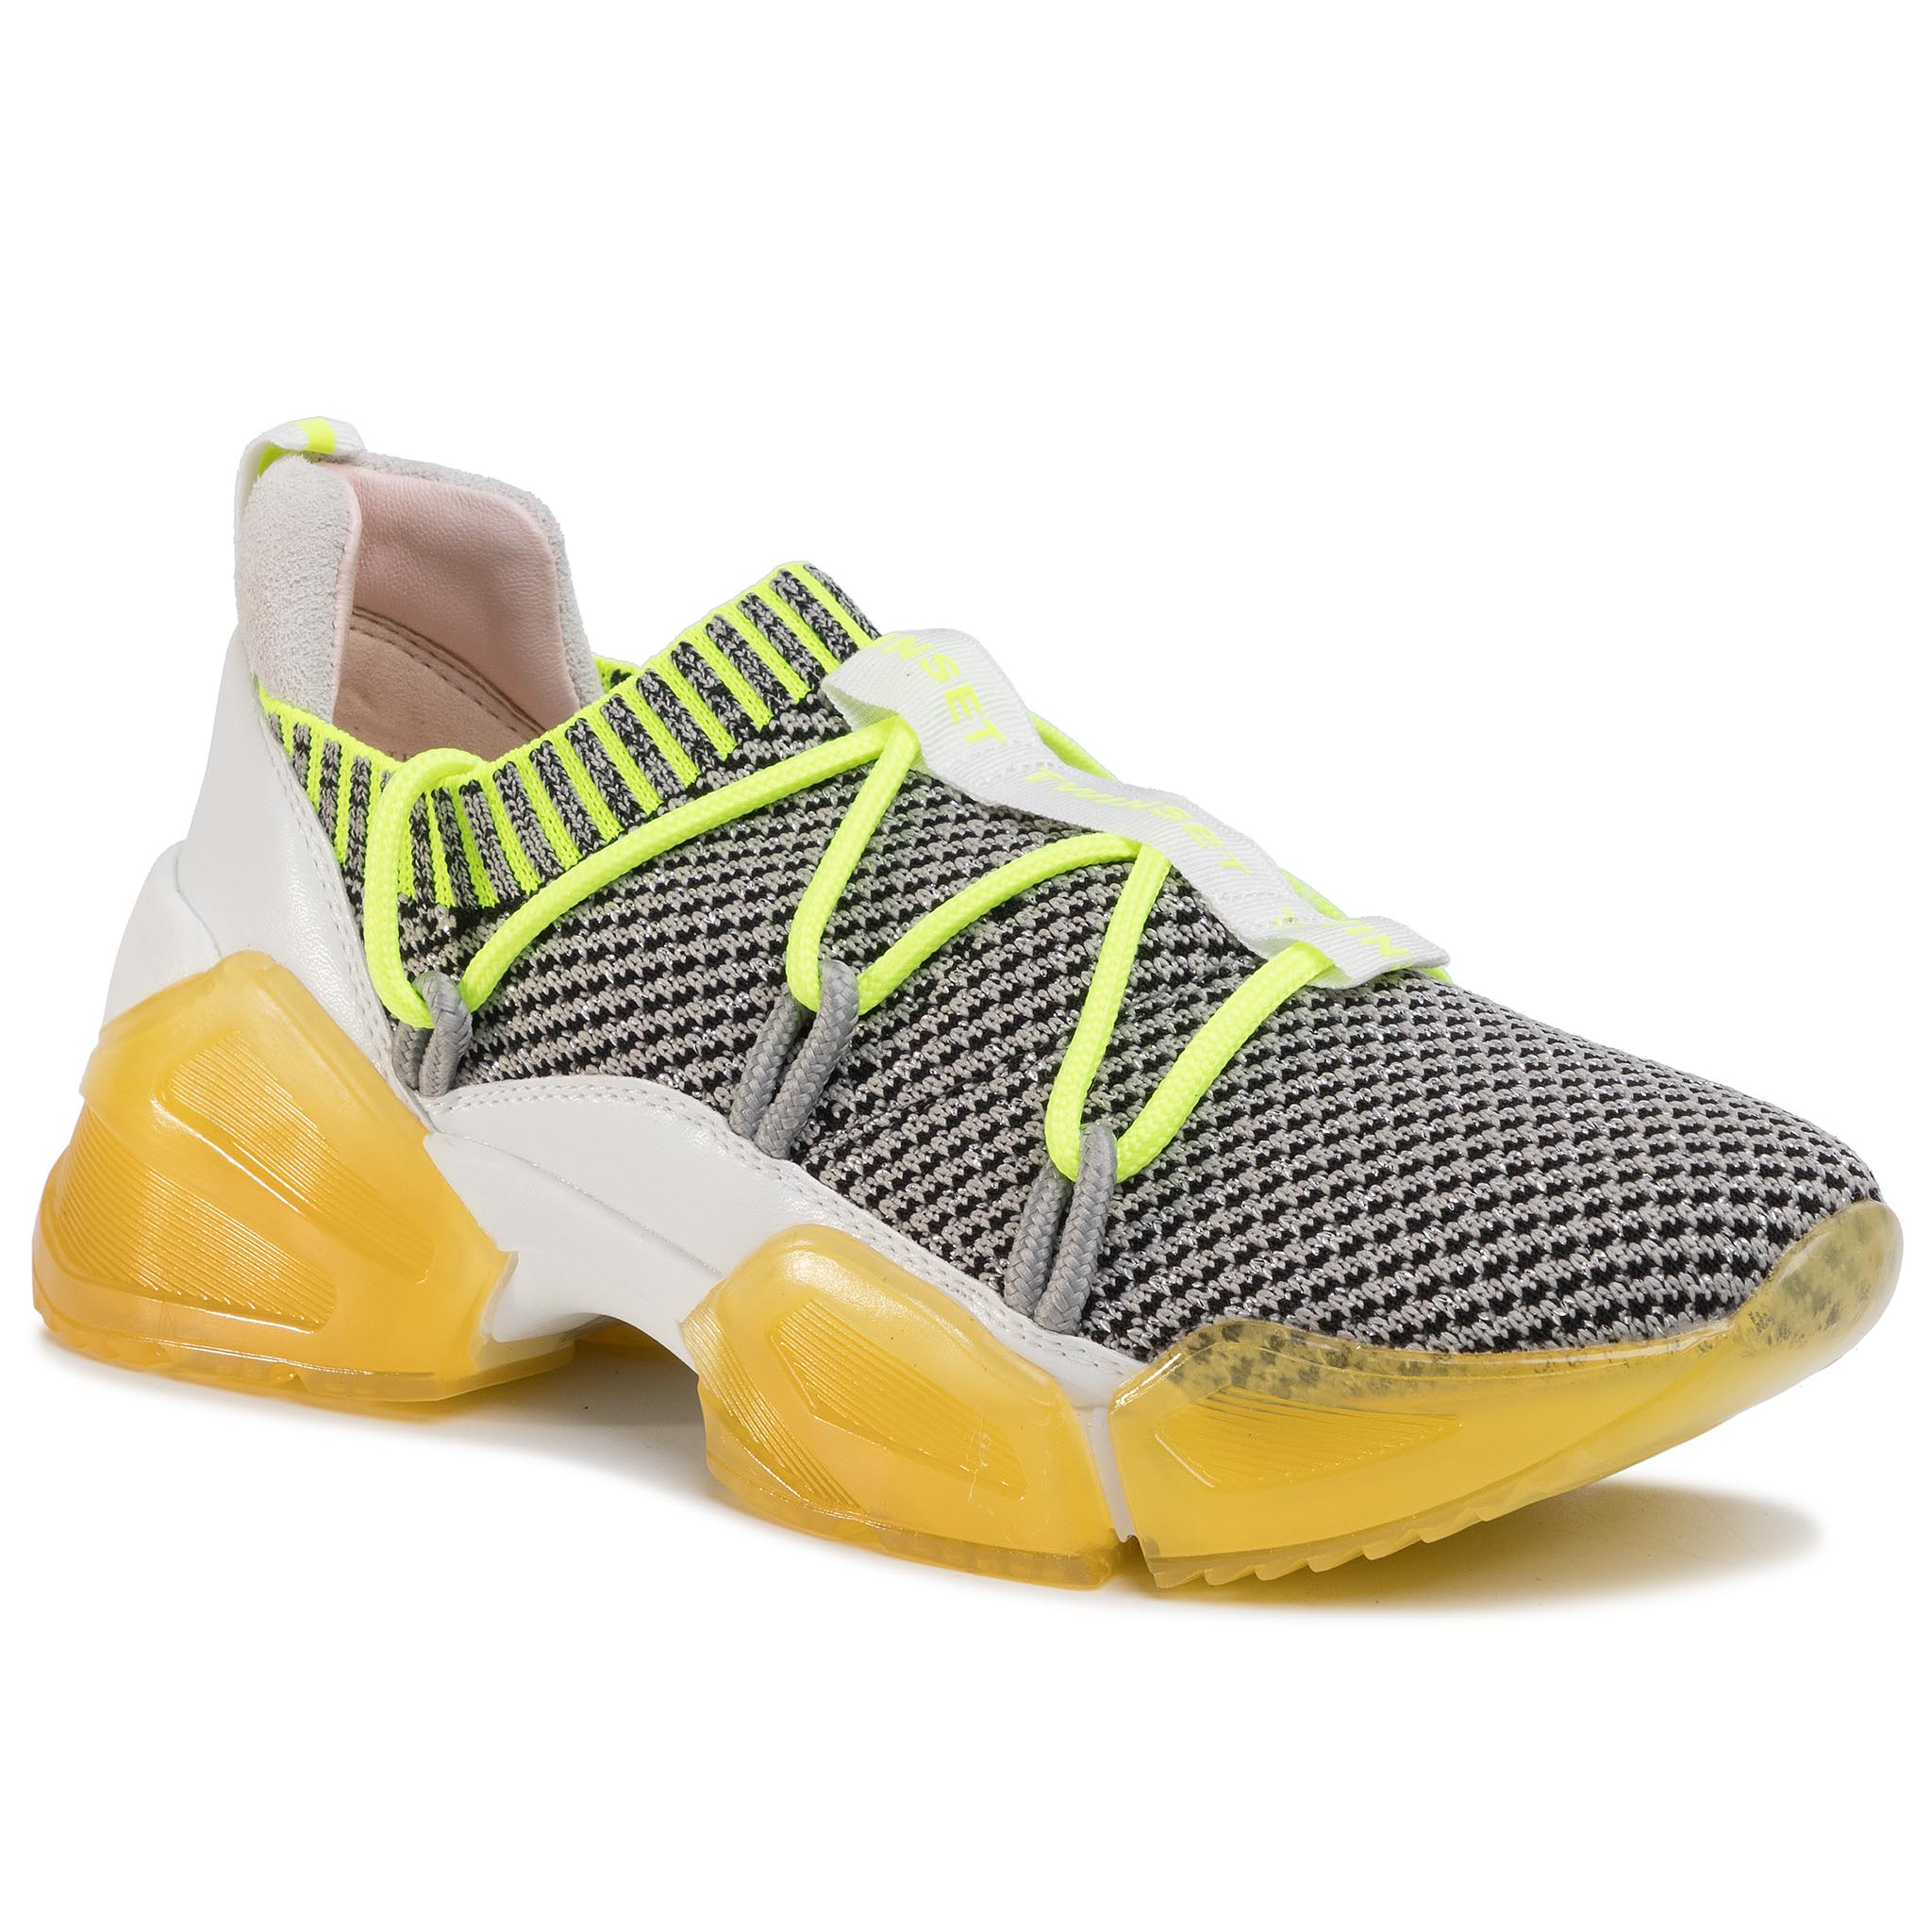 Sneakers TWINSET - Running 201TCP154 Bic. Beige/Giall 04852